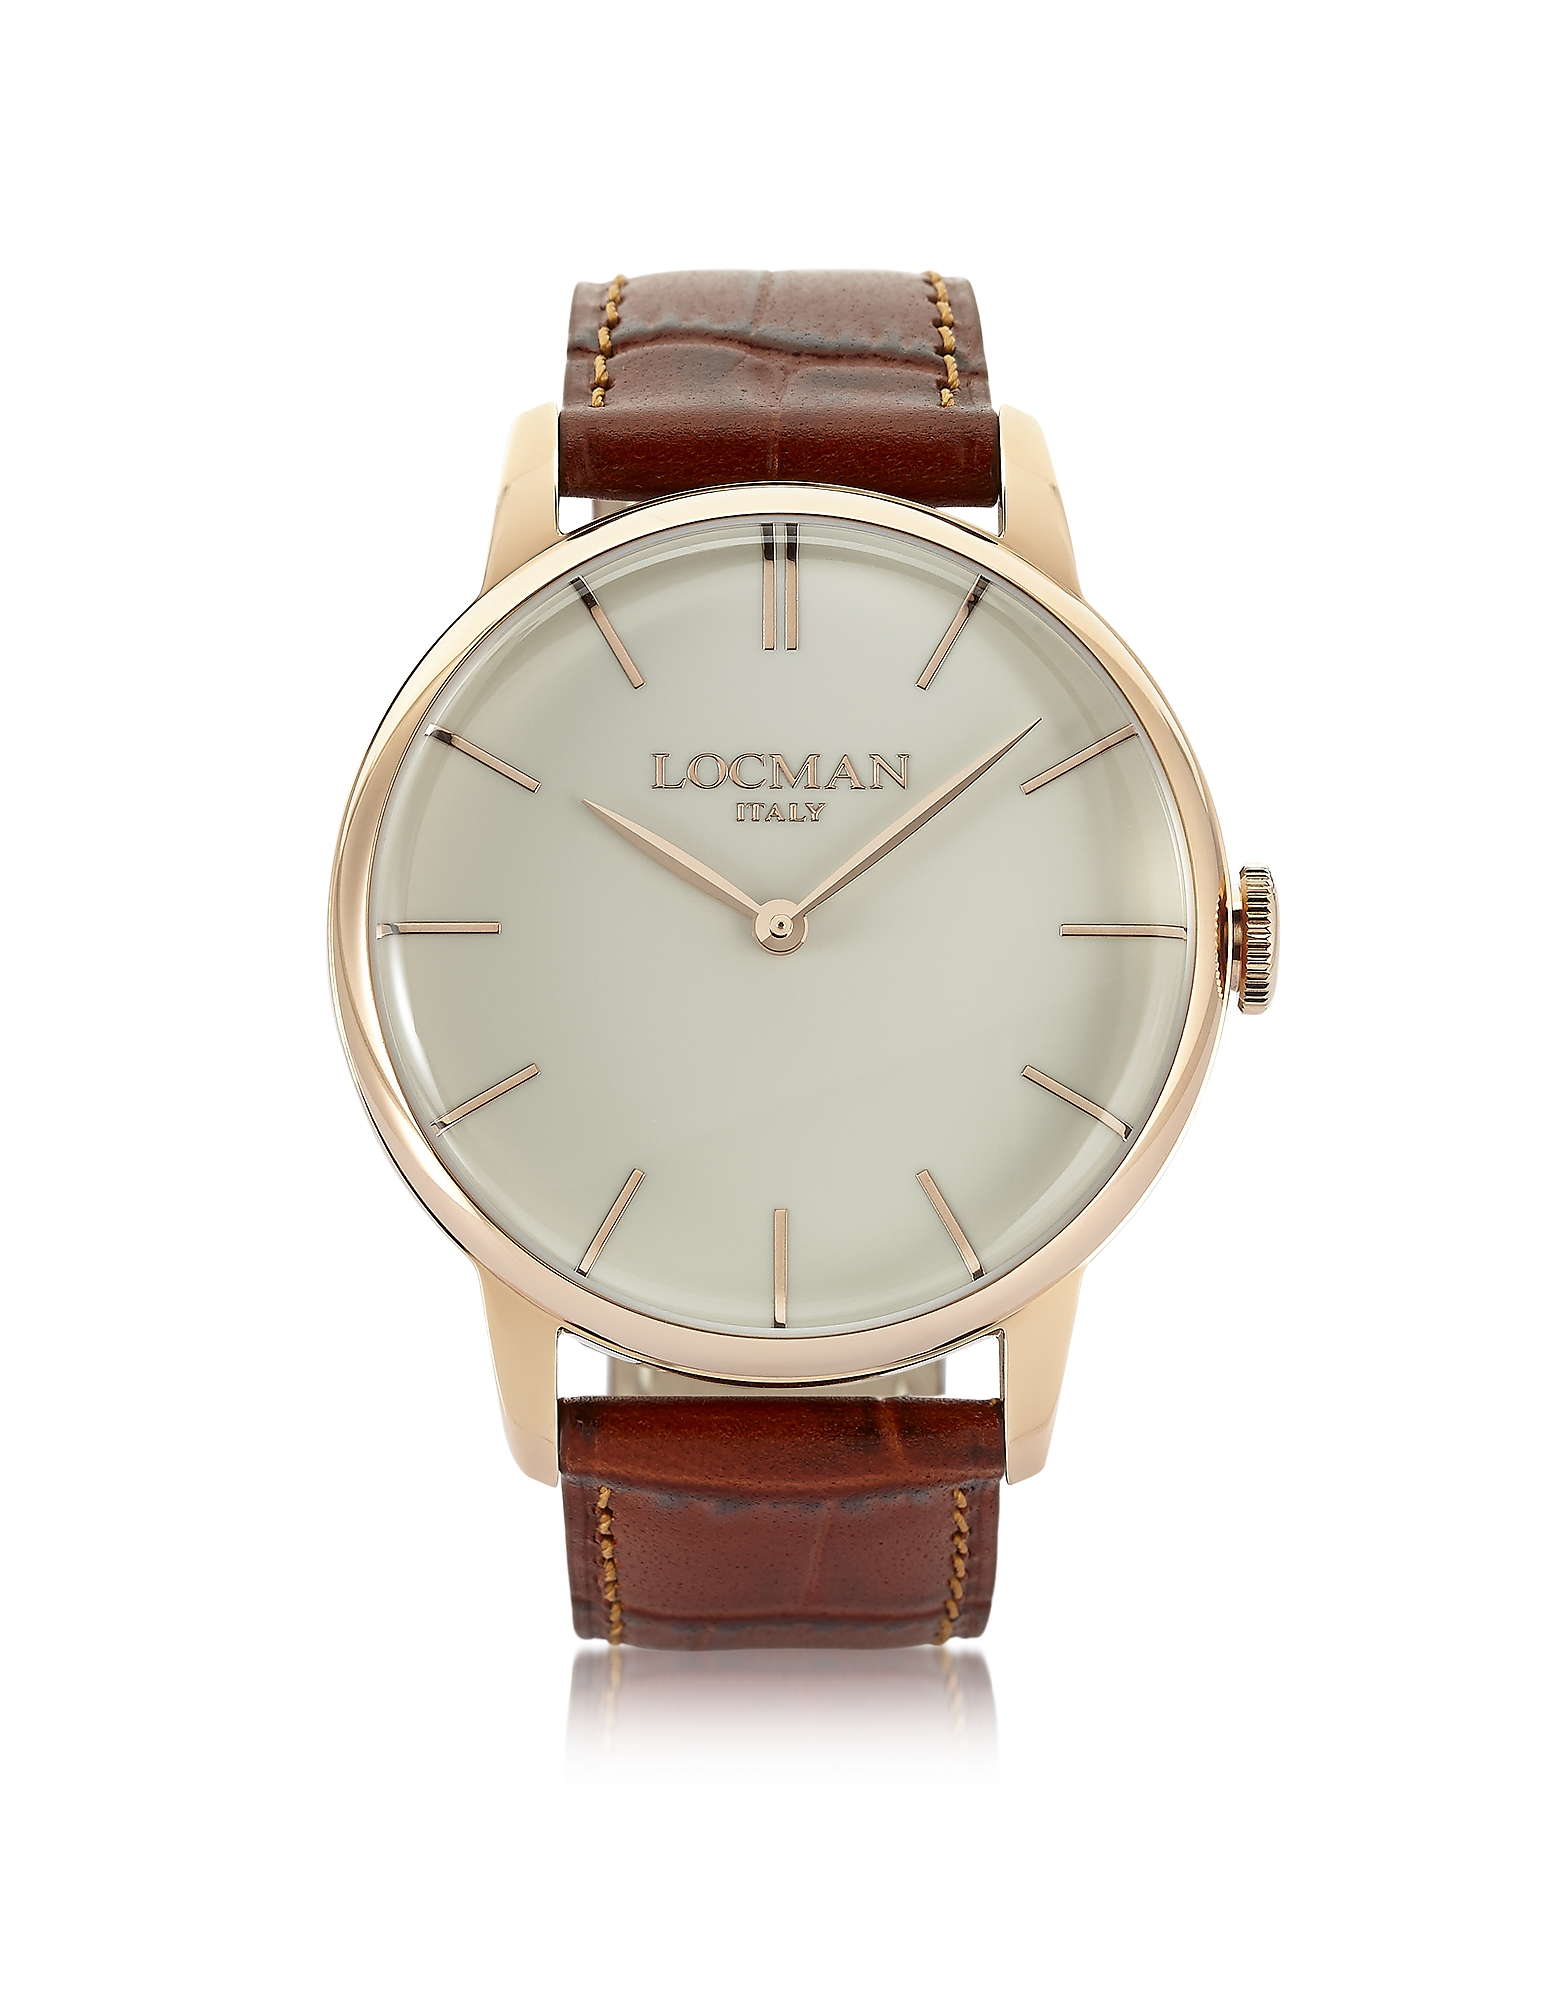 Locman Men's Watches, 1960 Rose Gold PVD Stainlees Steel Men's Watch w/Brown Croco Leather Strap